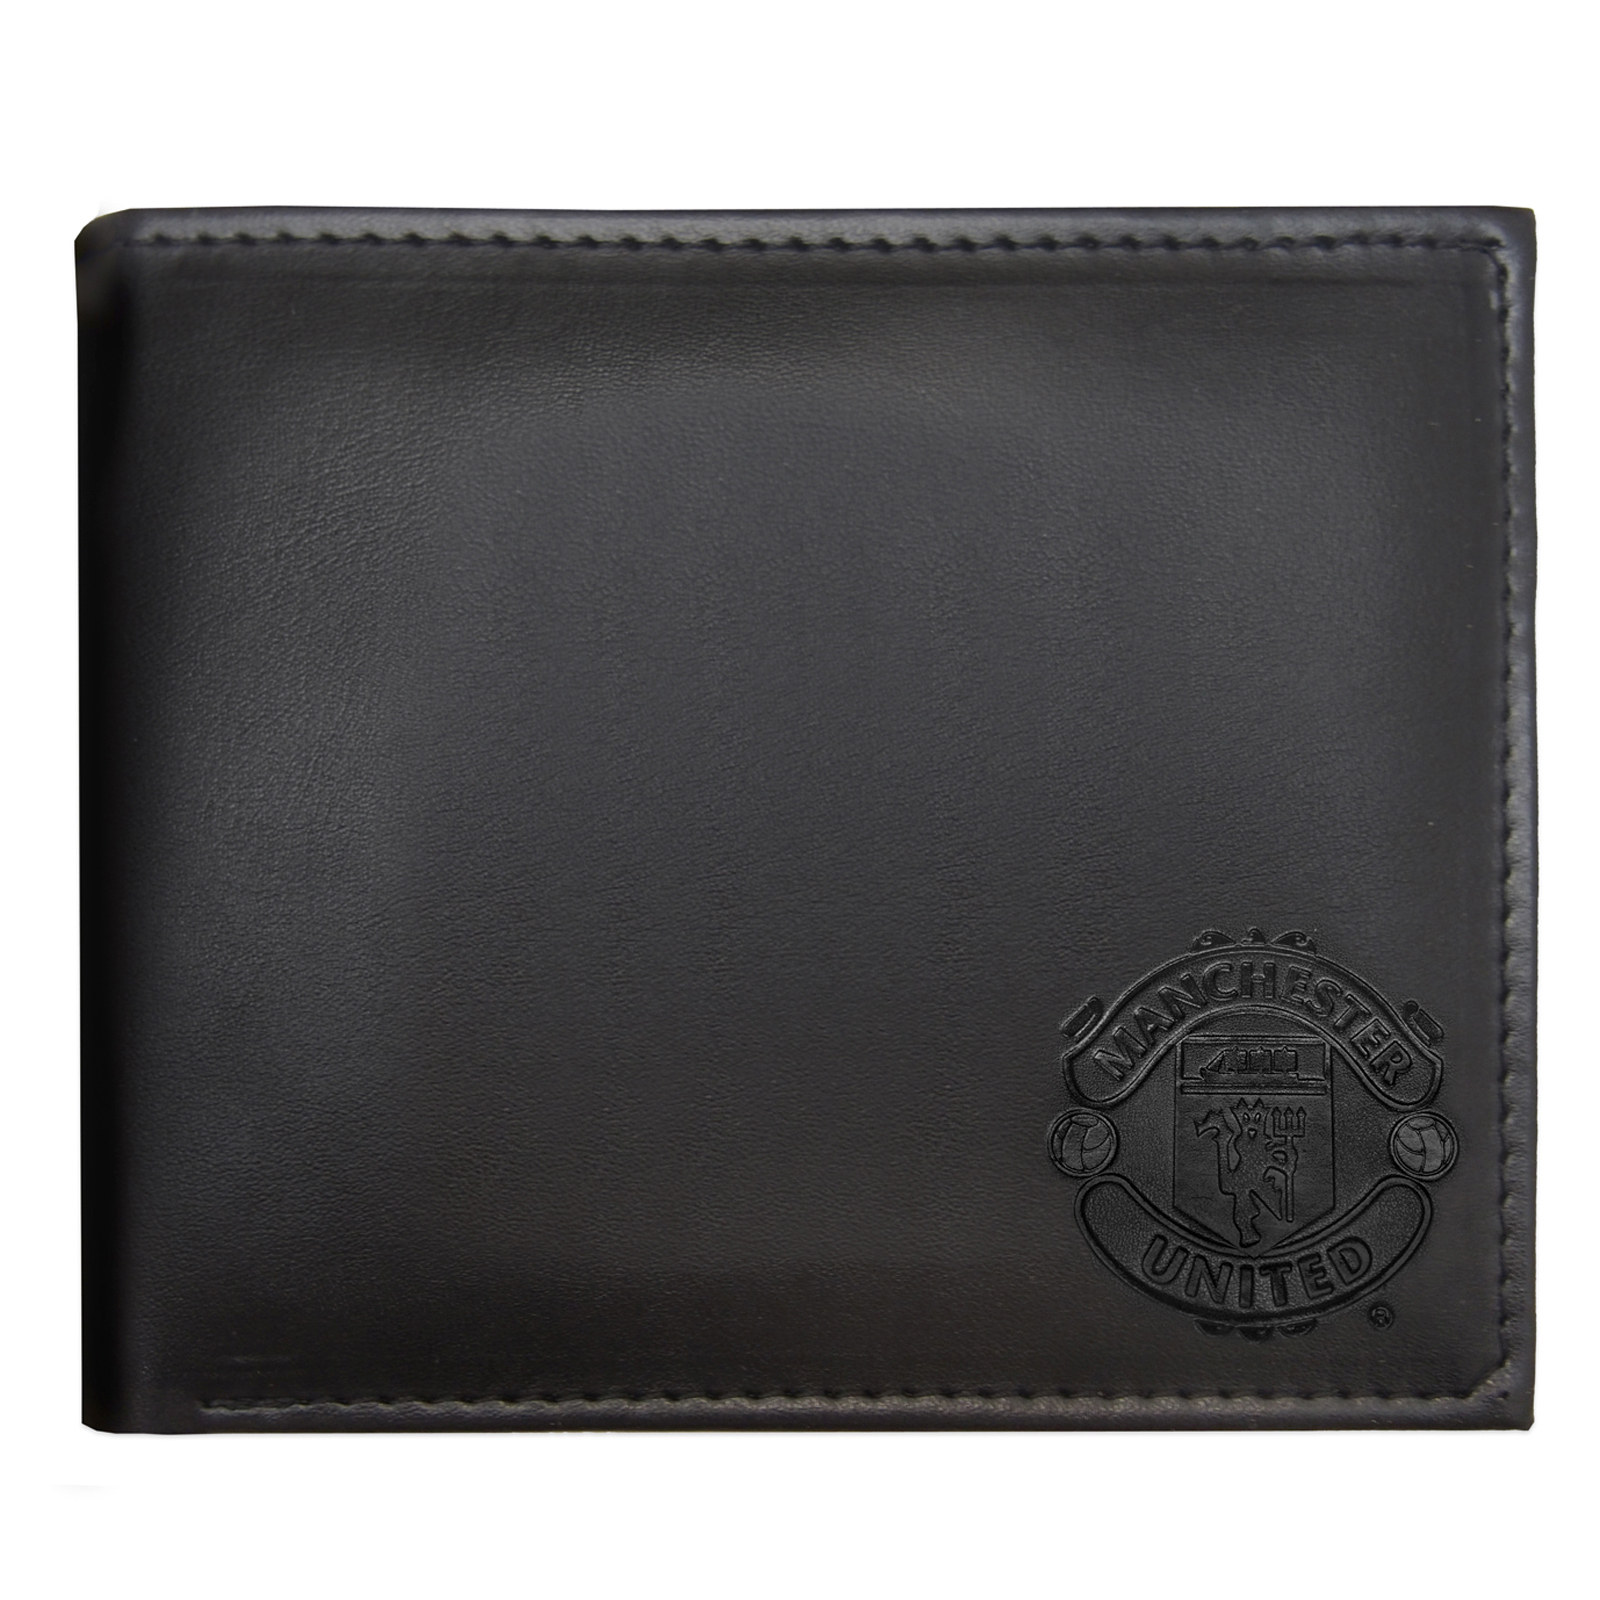 Manchester-United-FC-Official-Football-Gift-Embossed-Crest-Wallet Indexbild 6